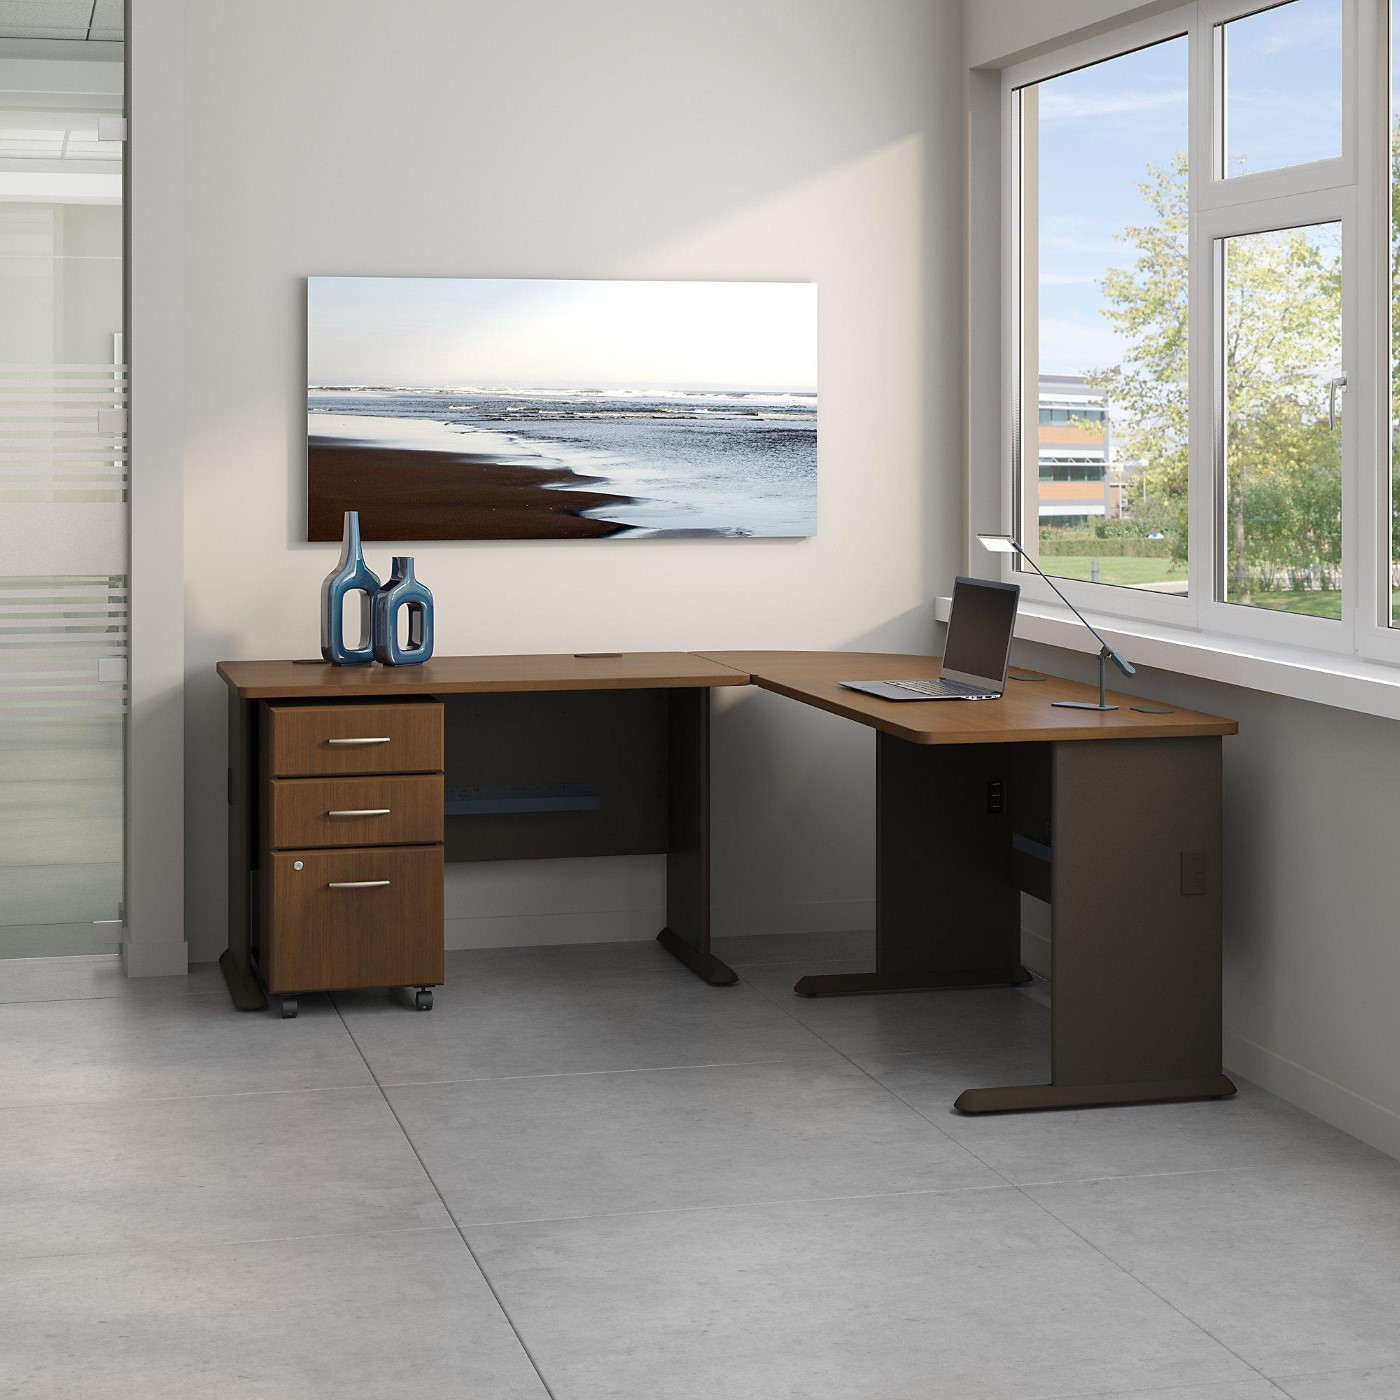 BUSH BUSINESS FURNITURE SERIES A 75W X 75D L SHAPED DESK WITH MOBILE FILE  CABINET.